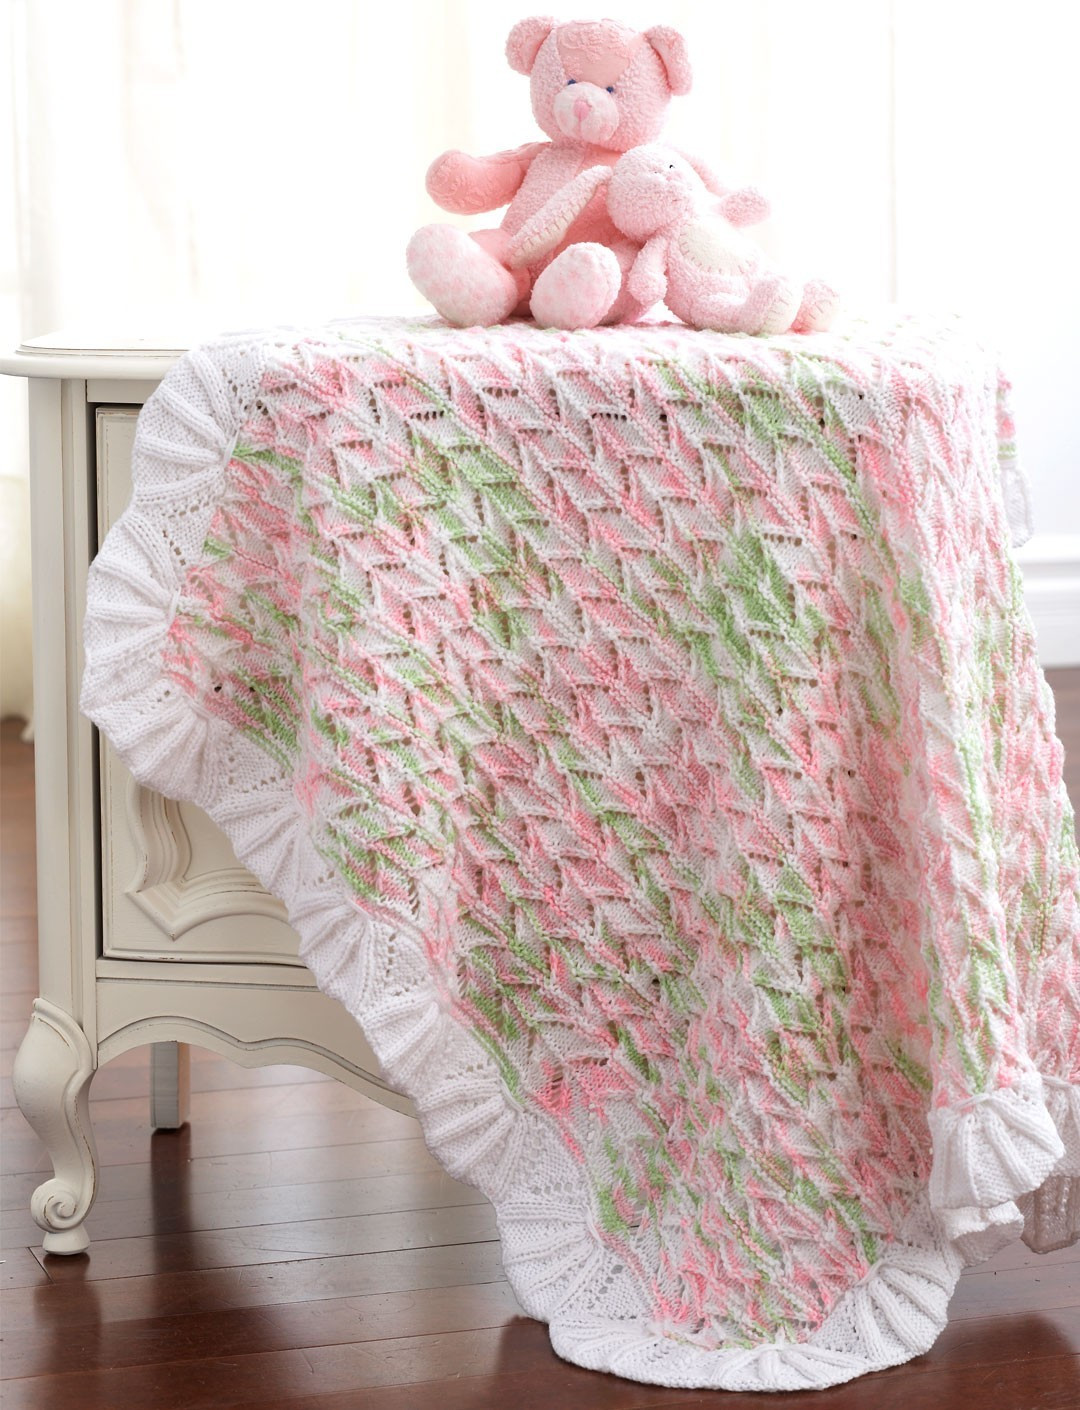 Baby Blanket Patterns Beautiful Lacy Blanket to Knit In Bernat Baby Sport Of Delightful 50 Pictures Baby Blanket Patterns